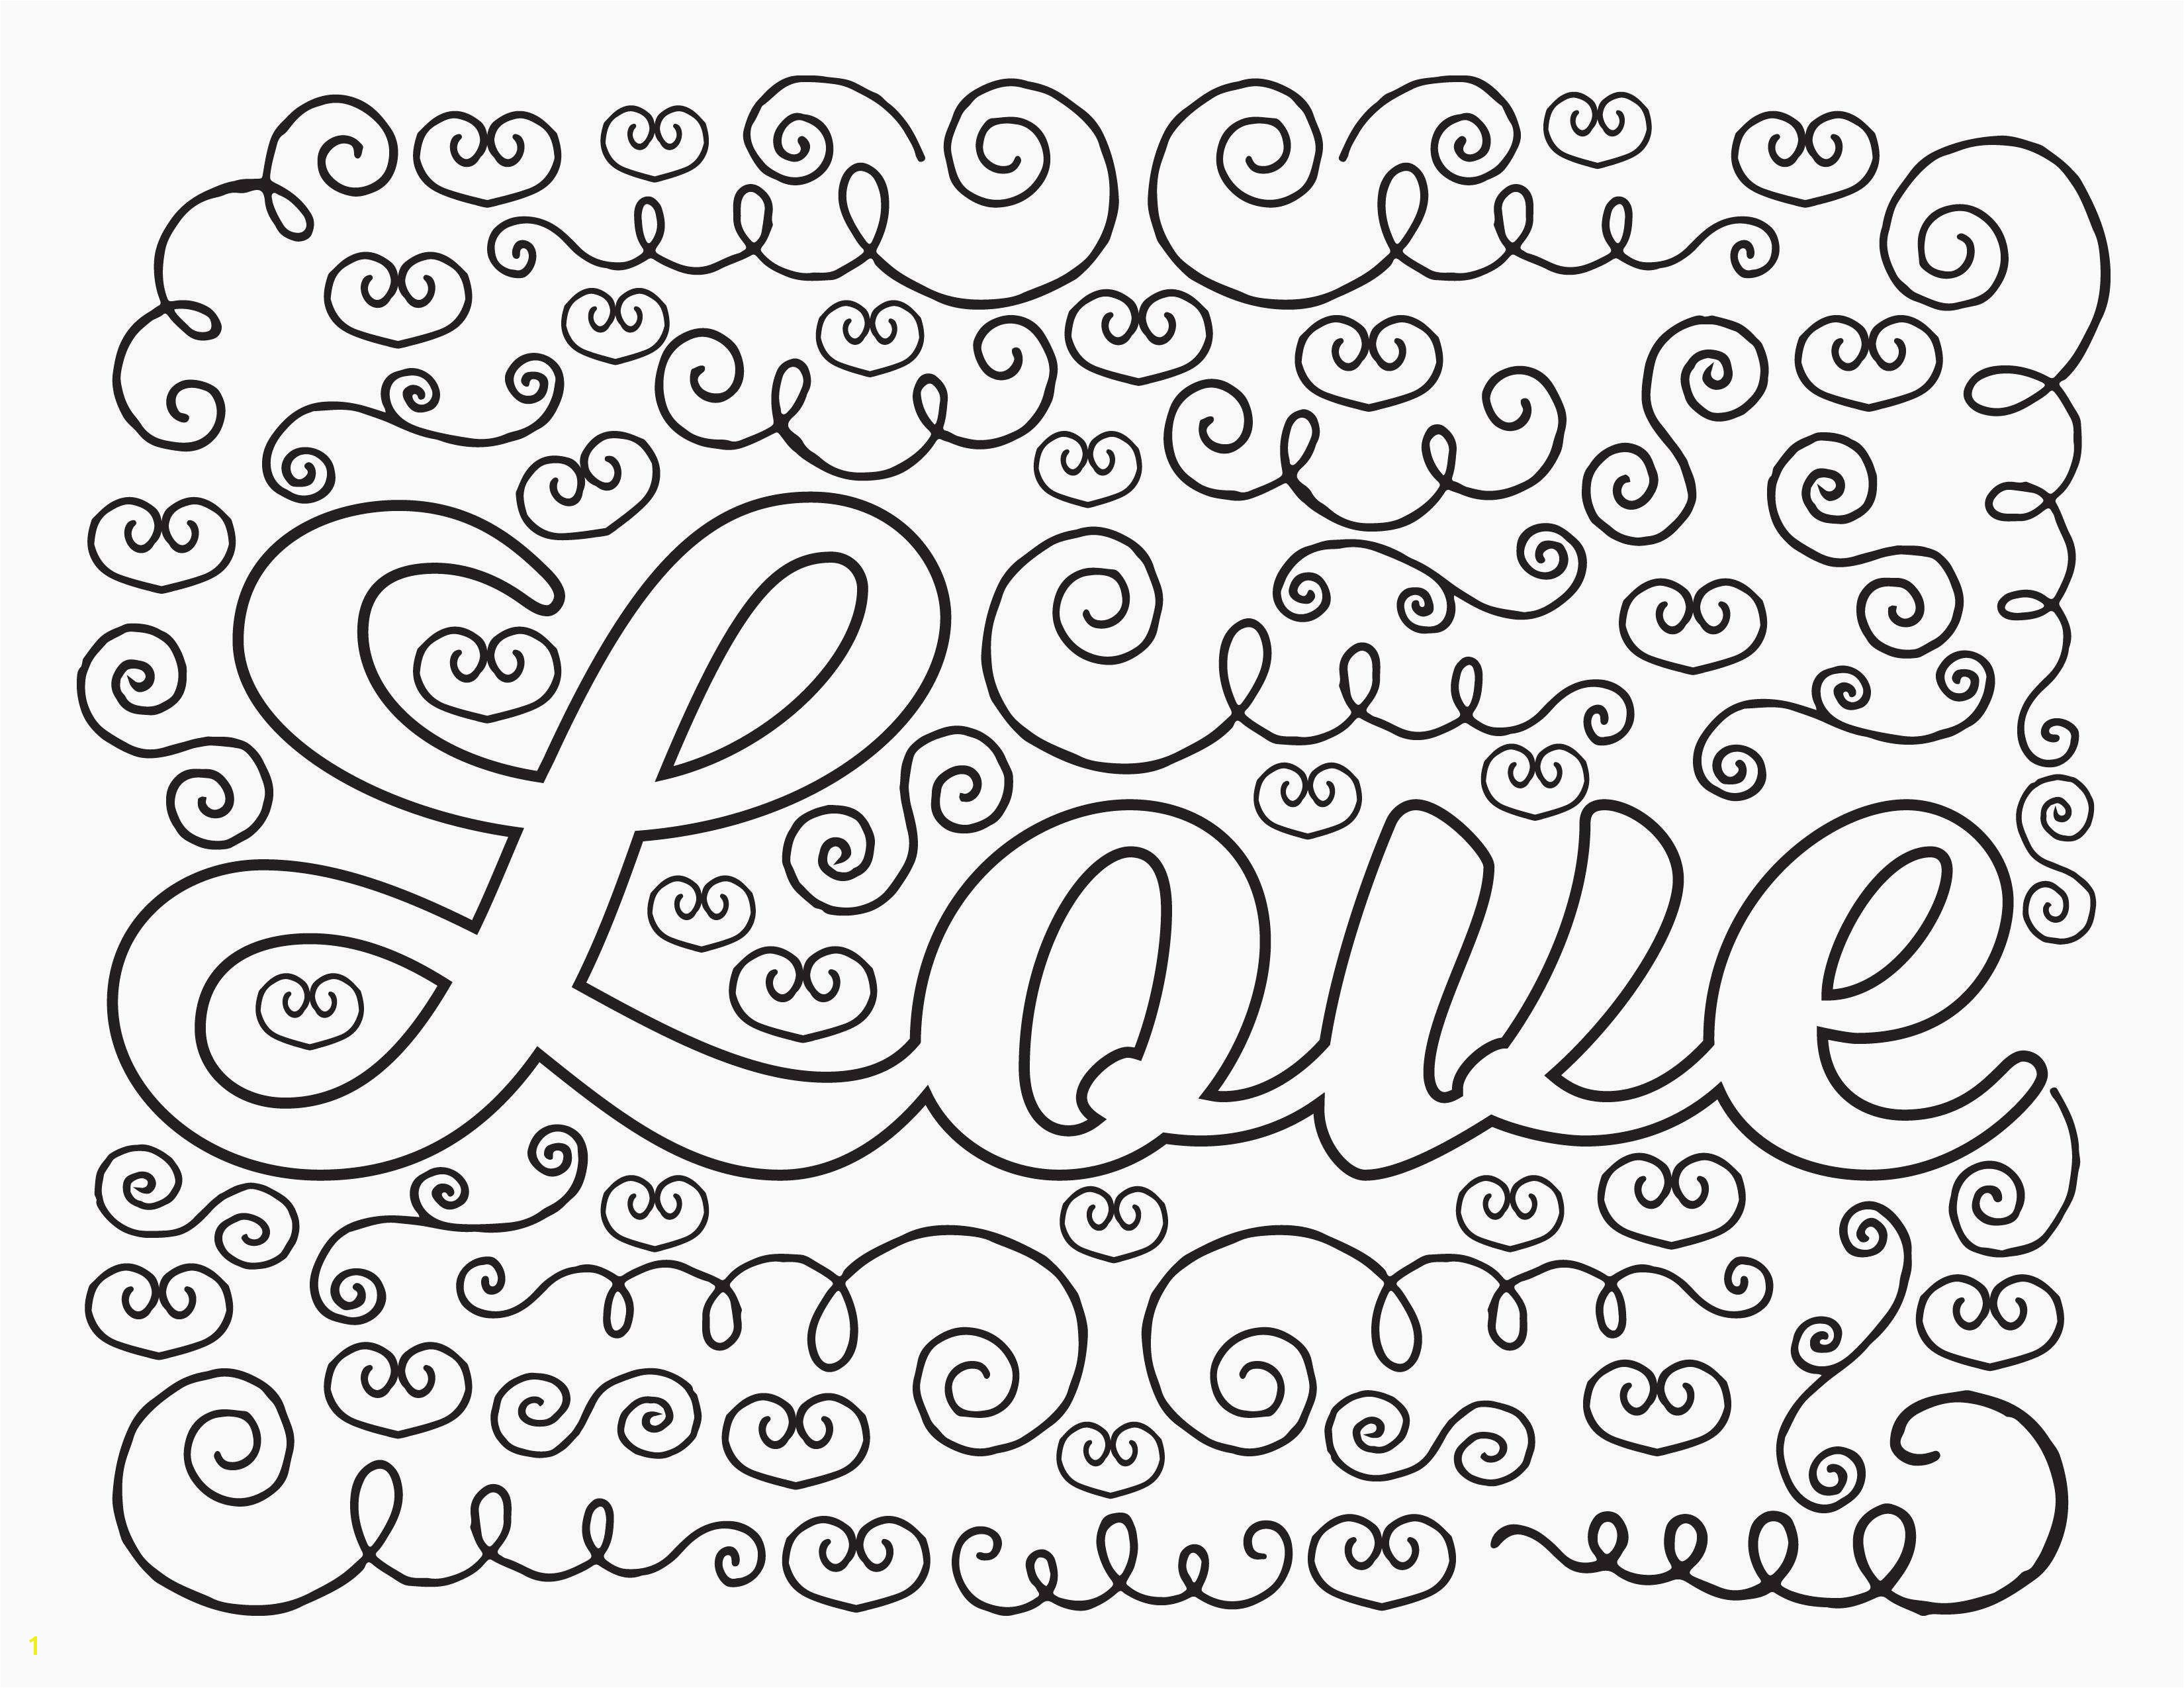 Coloring for Kids Lovely Free Printable Kids Coloring Pages Beautiful Crayola Pages 0d Christmas Star Coloring